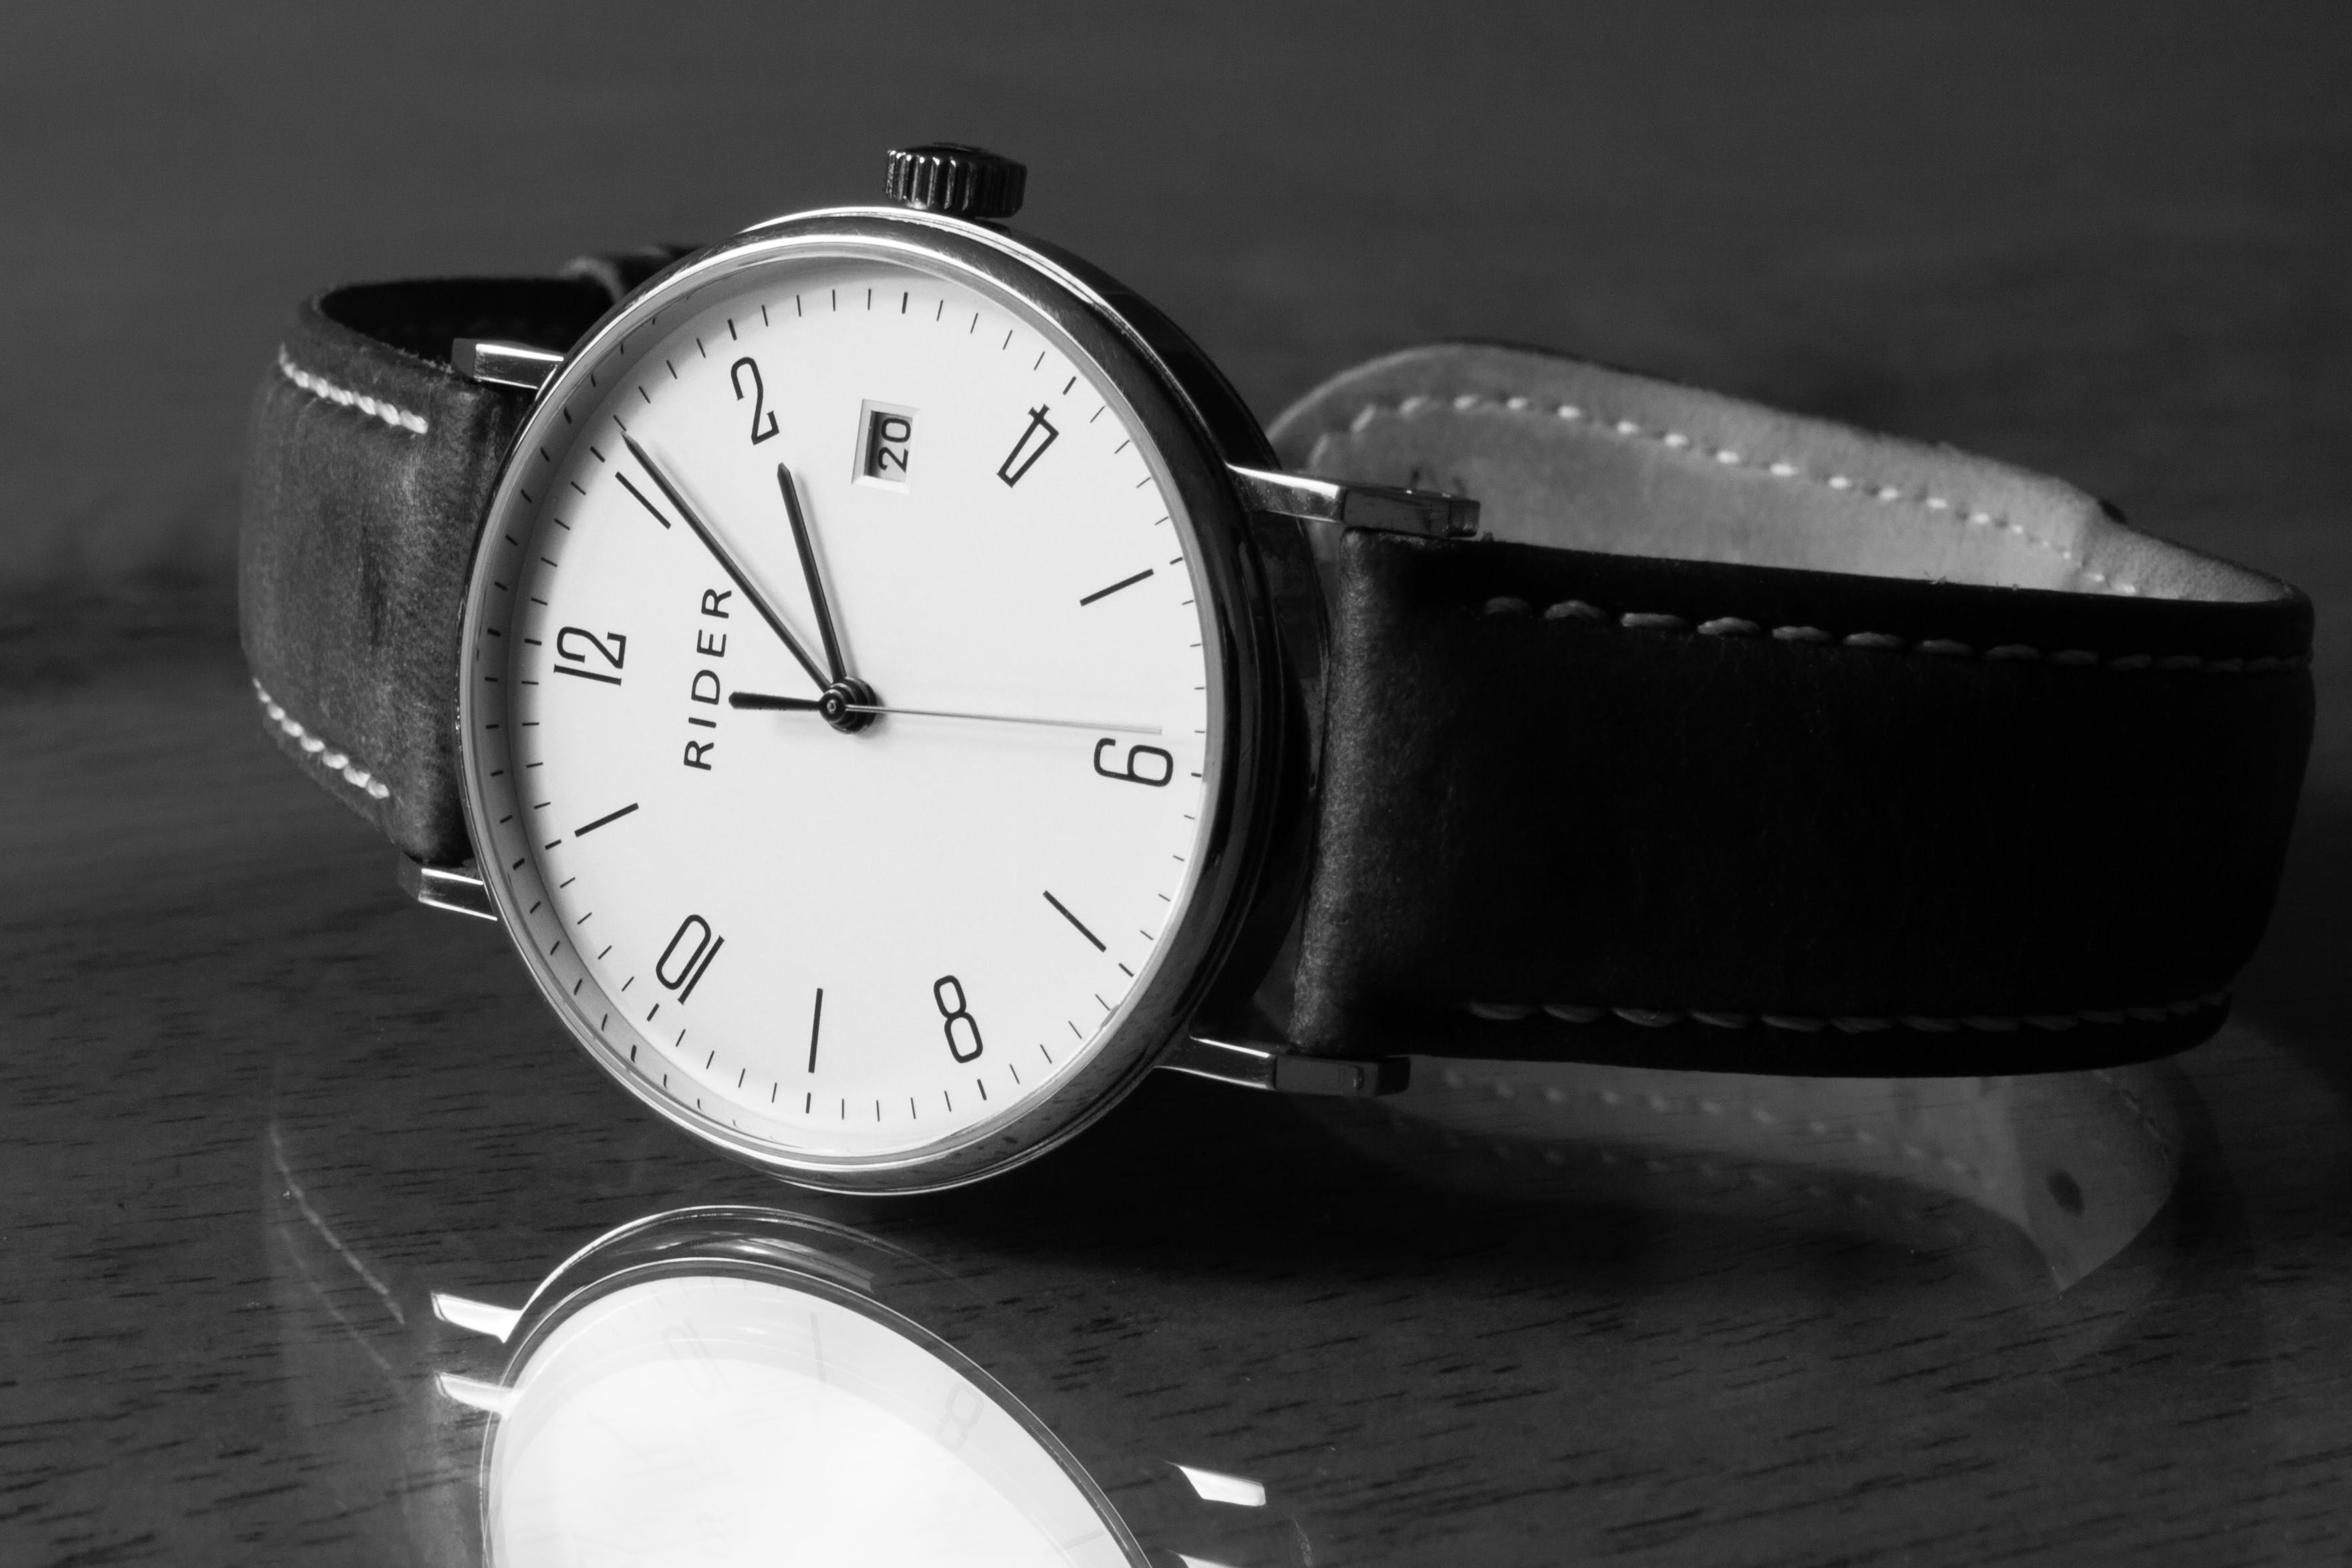 Free stock photo of Analog watch, black and white, time, wrist watch